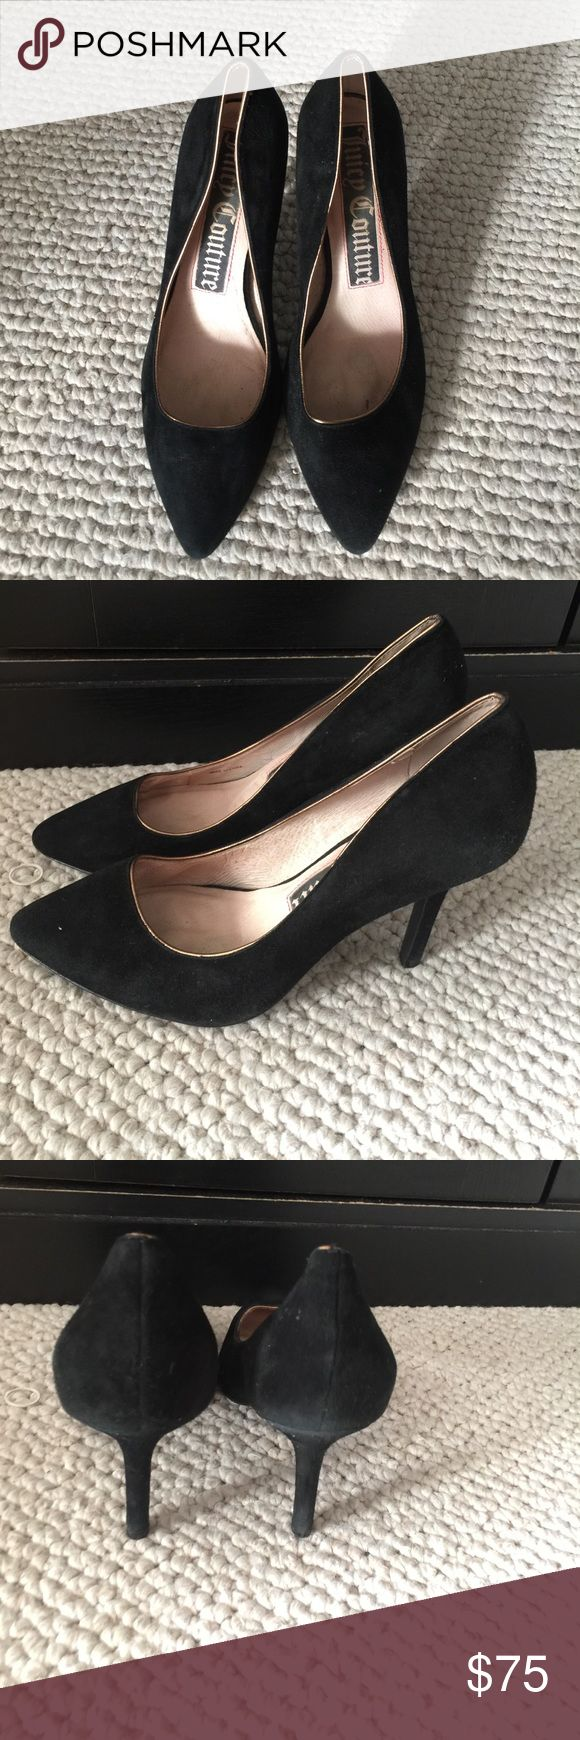 Juicy Couture High Heels These amazing juicy couture shoes are velvet black. They go with any type of outfit. Do you need almost new shoes for an upcoming party or a wedding? These are simply for any occasion. Worn only once or twice. Juicy Couture Shoes Heels